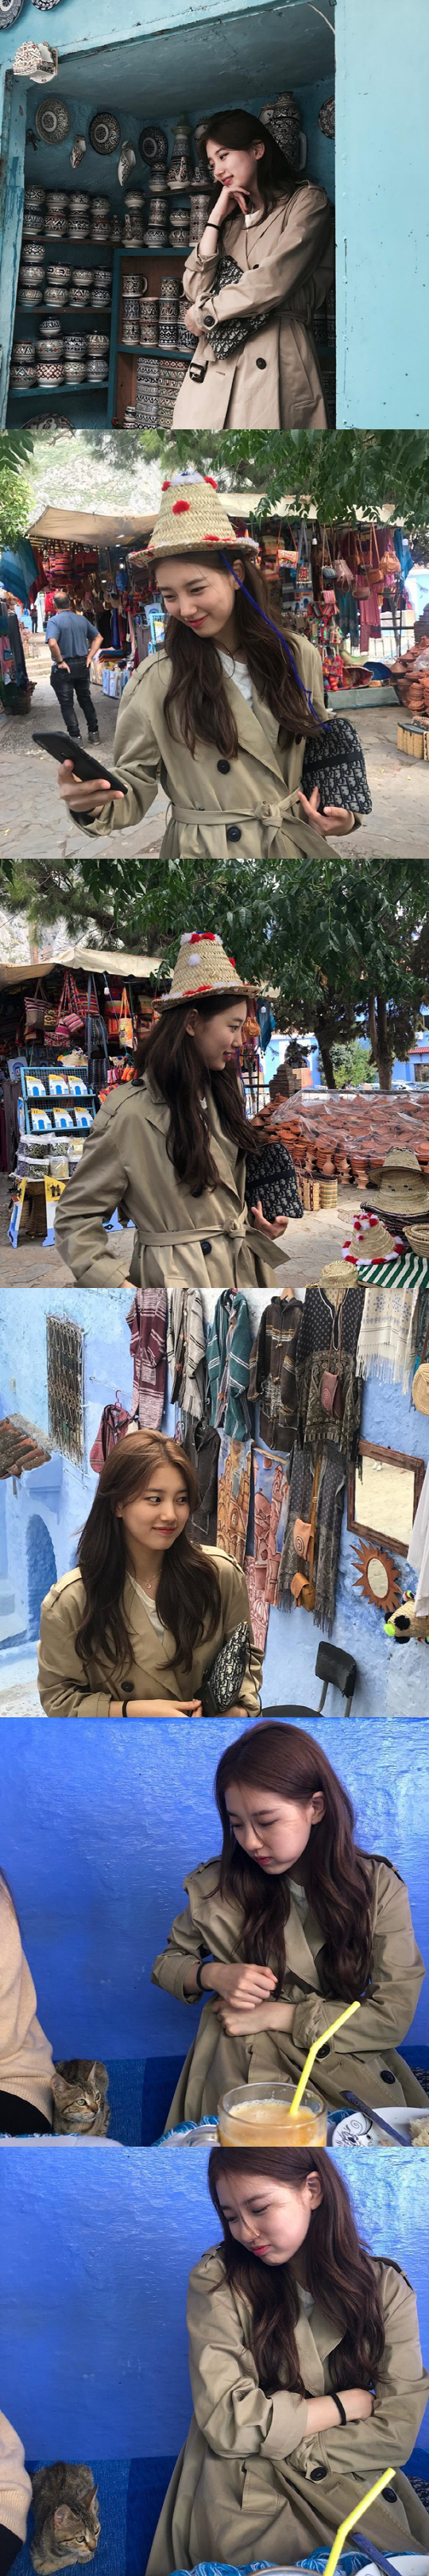 <p>Bae Suzy on his SNS on the 11th, go to go. I uploaded several photos of my trip to Morocco with articles like Pretty Hinds and. Twins.</p><p>In the photo, Bae Suzy showed a dazzling visual in a trench coat. Morocco Walking around the village of Chefchaouen in Morocco, famous for being painted blue all over with a traditional hat, I also got acquainted with Cat.</p><p>Bae Suzy is staying in Morocco, a new drama Bye Bond shooting car with Lee Seung-ki. Bae Suzy will take charge of action intelligence by serving as an assistant manager of NIS Black and Harry.</p>